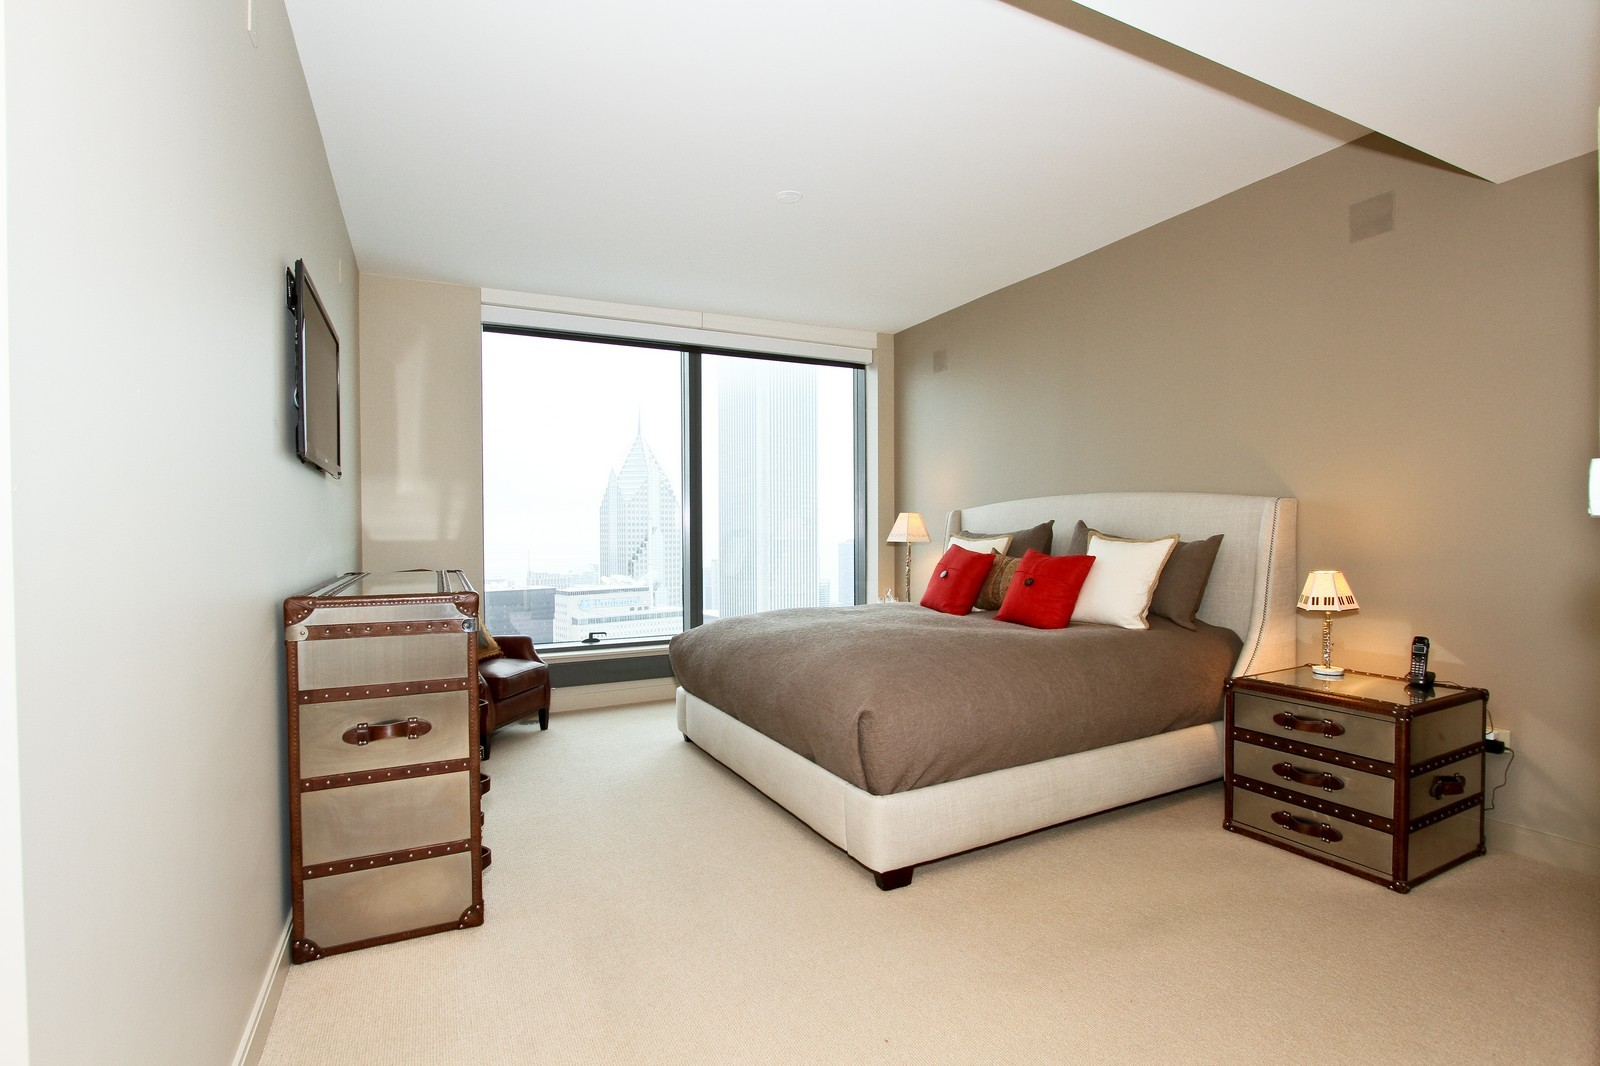 Real Estate Photography - 60 E Monroe, 6501, Chicago, IL, 60603 - Master Bedroom